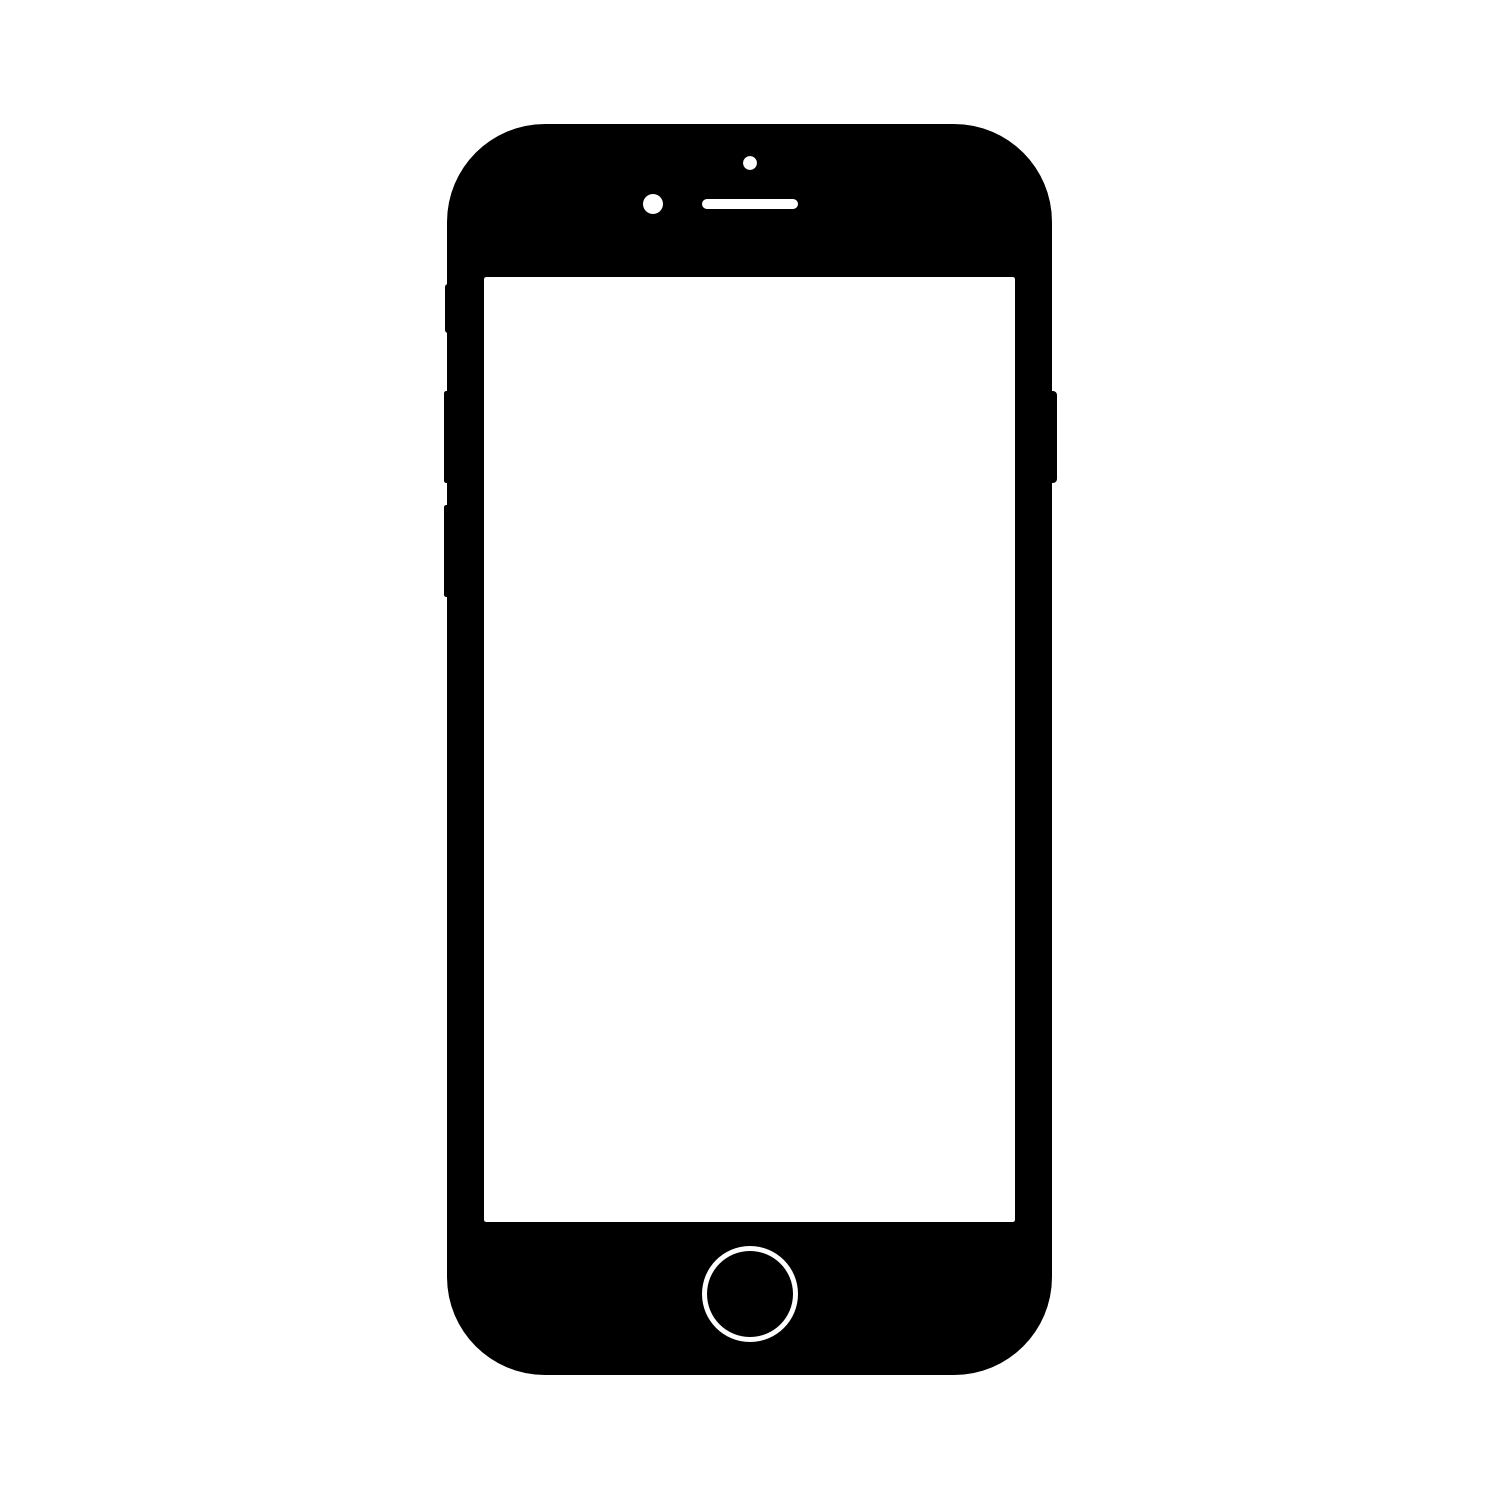 Iphone 6 clipart size picture freeuse library Iphone clipart pixel size - ClipartFox picture freeuse library